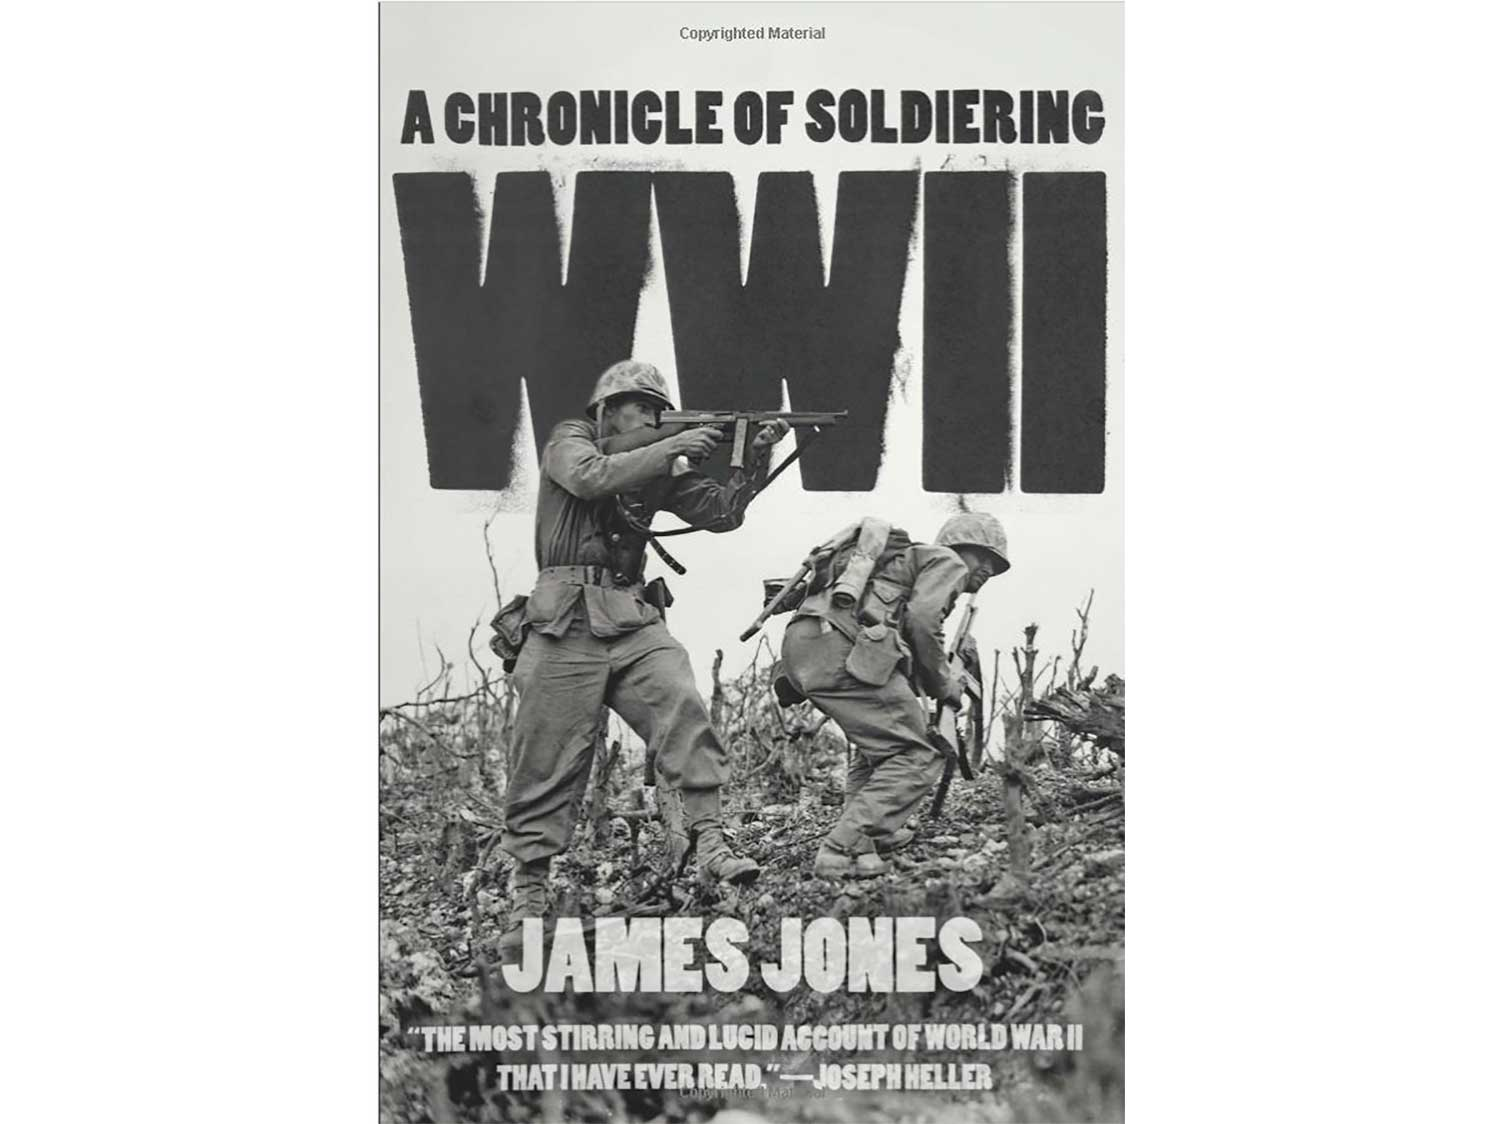 WWII, a Chronicle of Soldering by James Jones